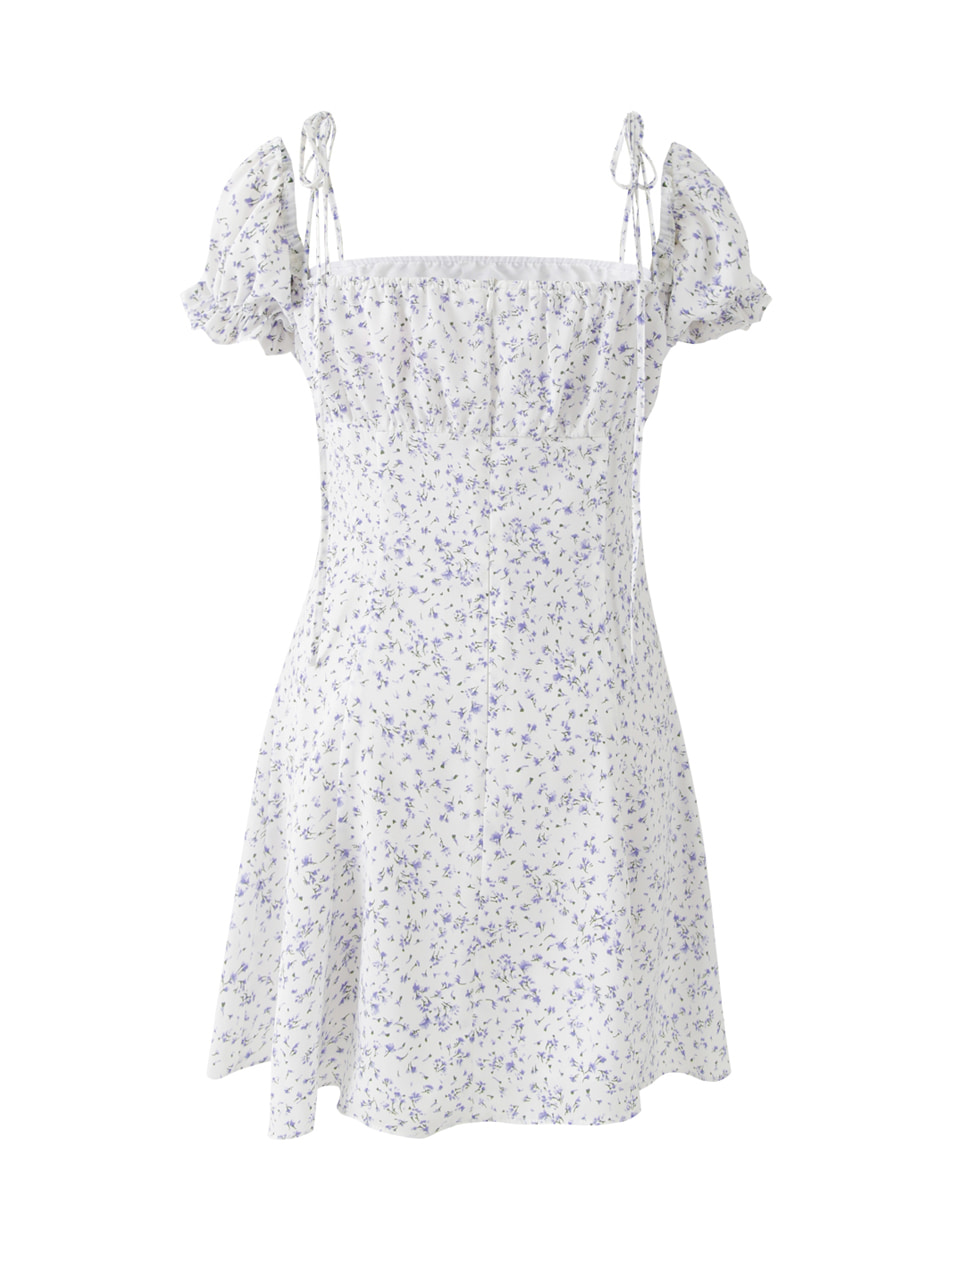 Puff mini dress (flower)